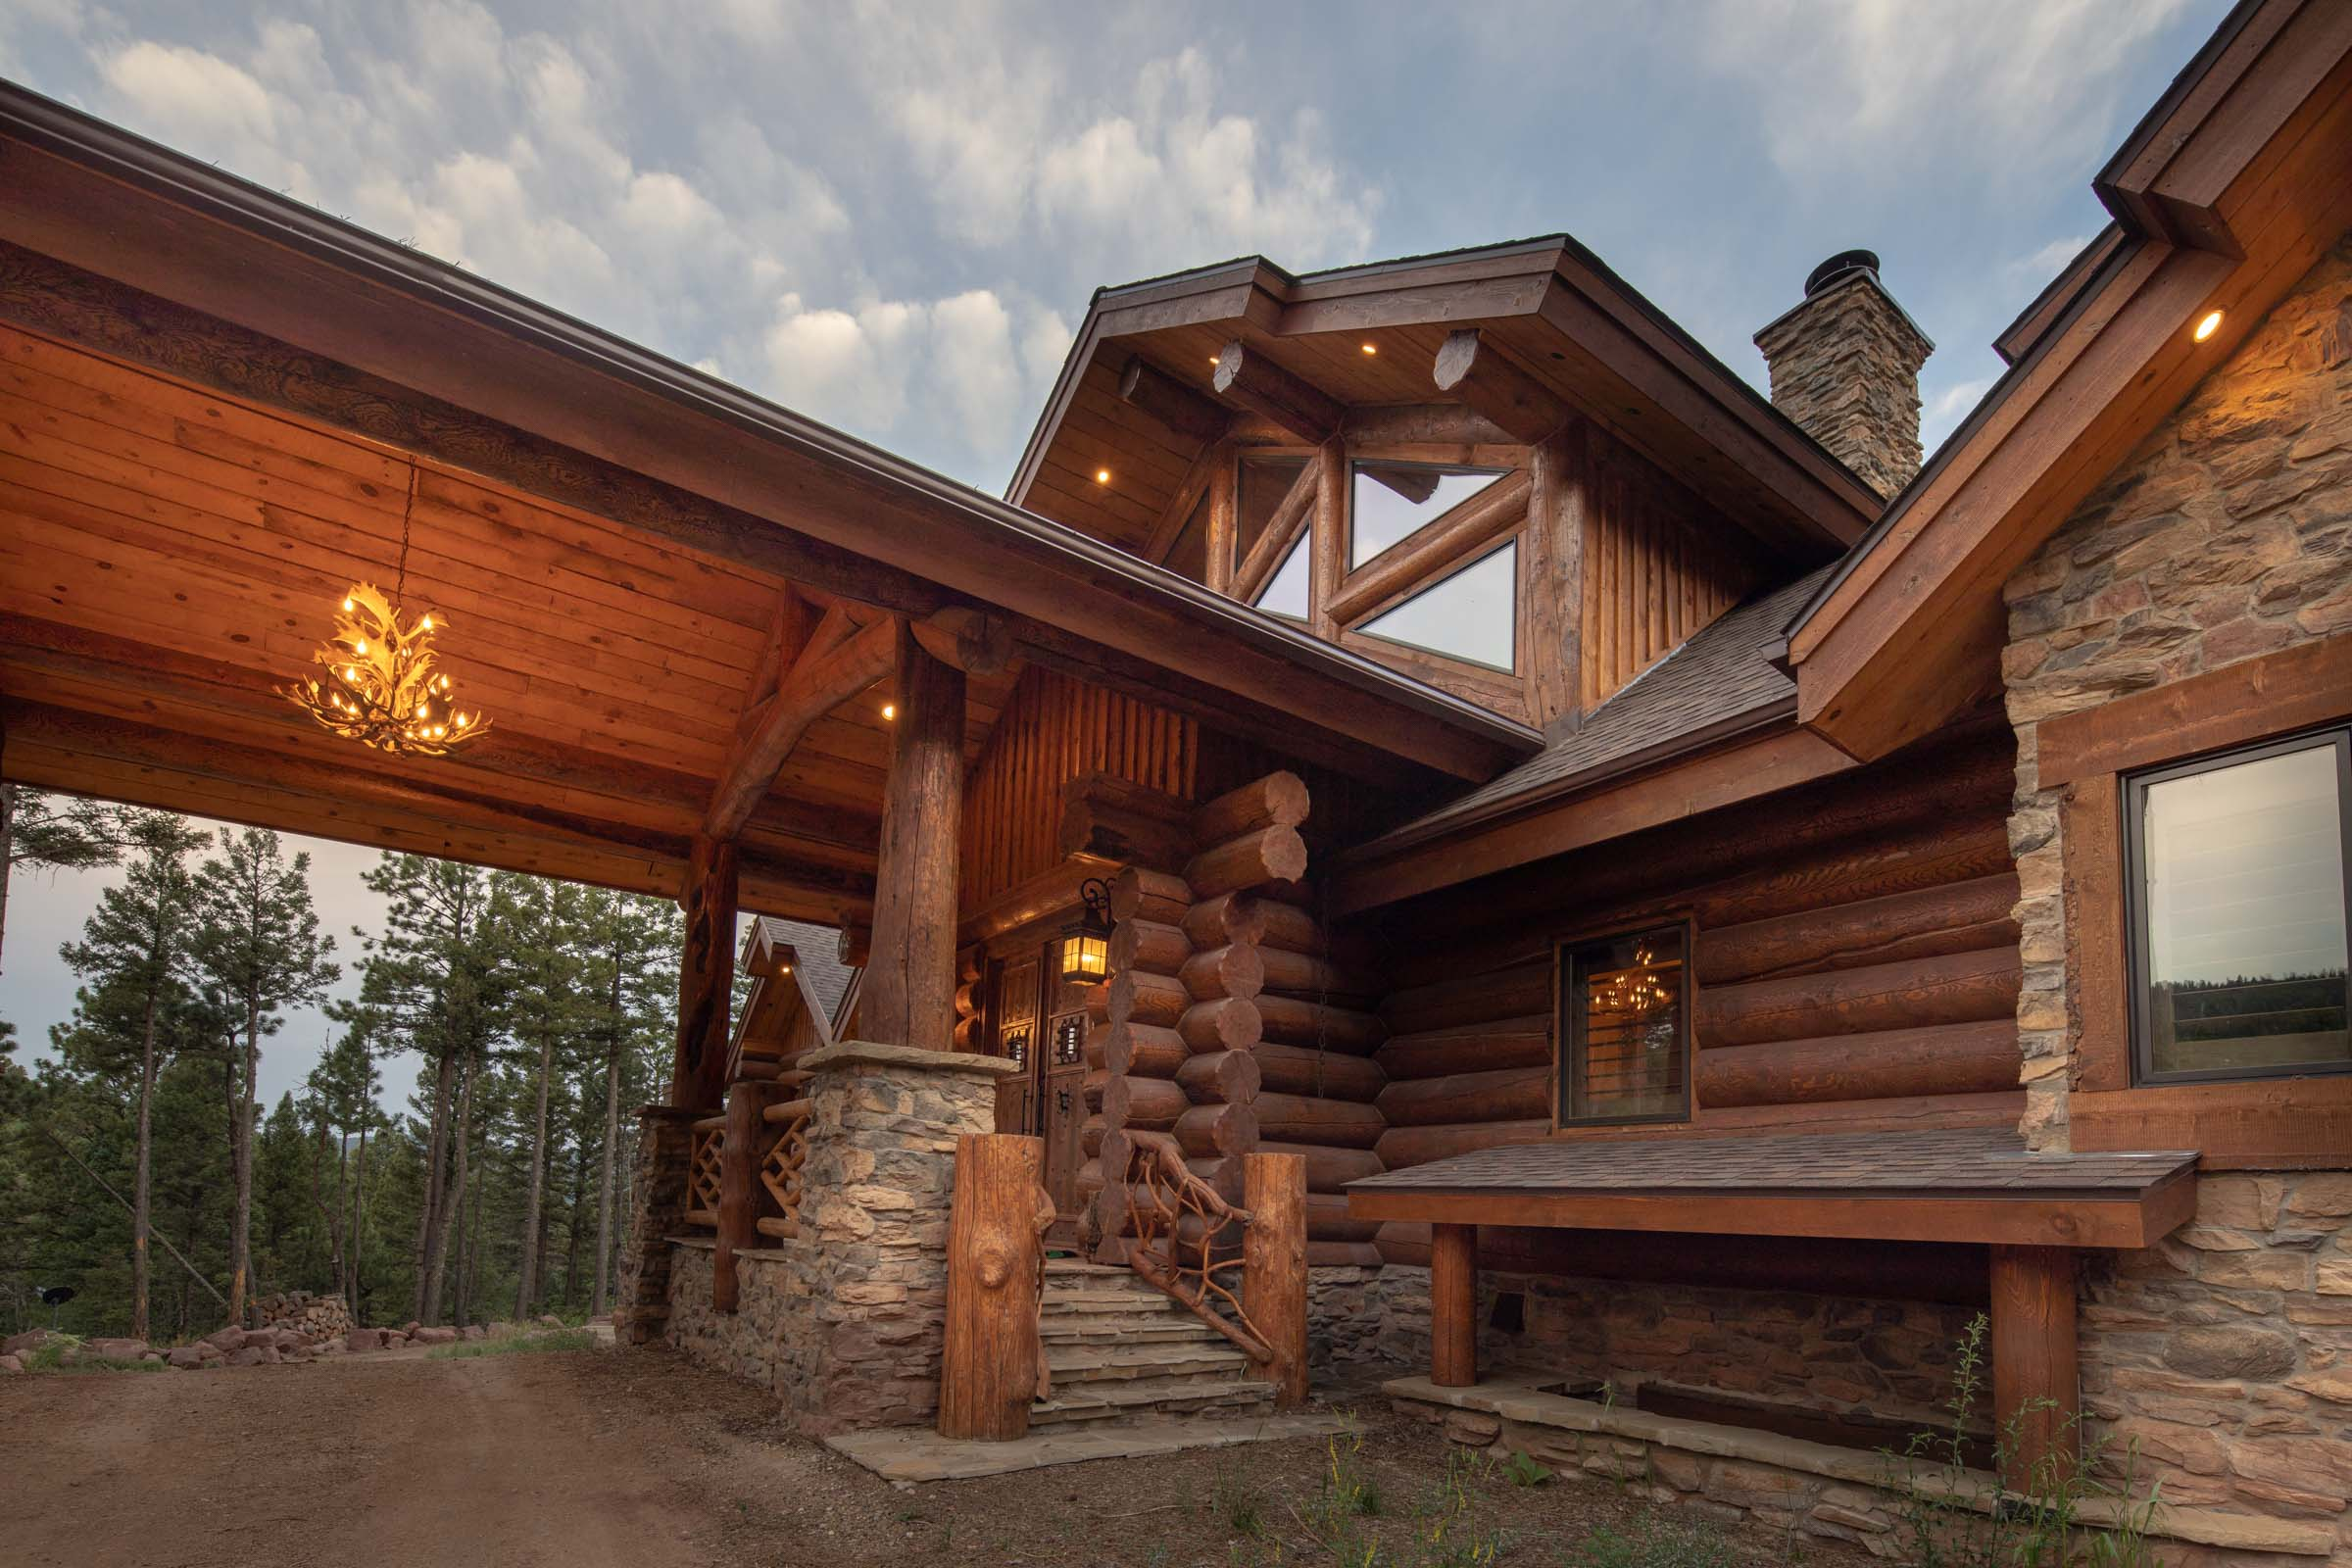 Luxury log cabin angel fire new mexico-10